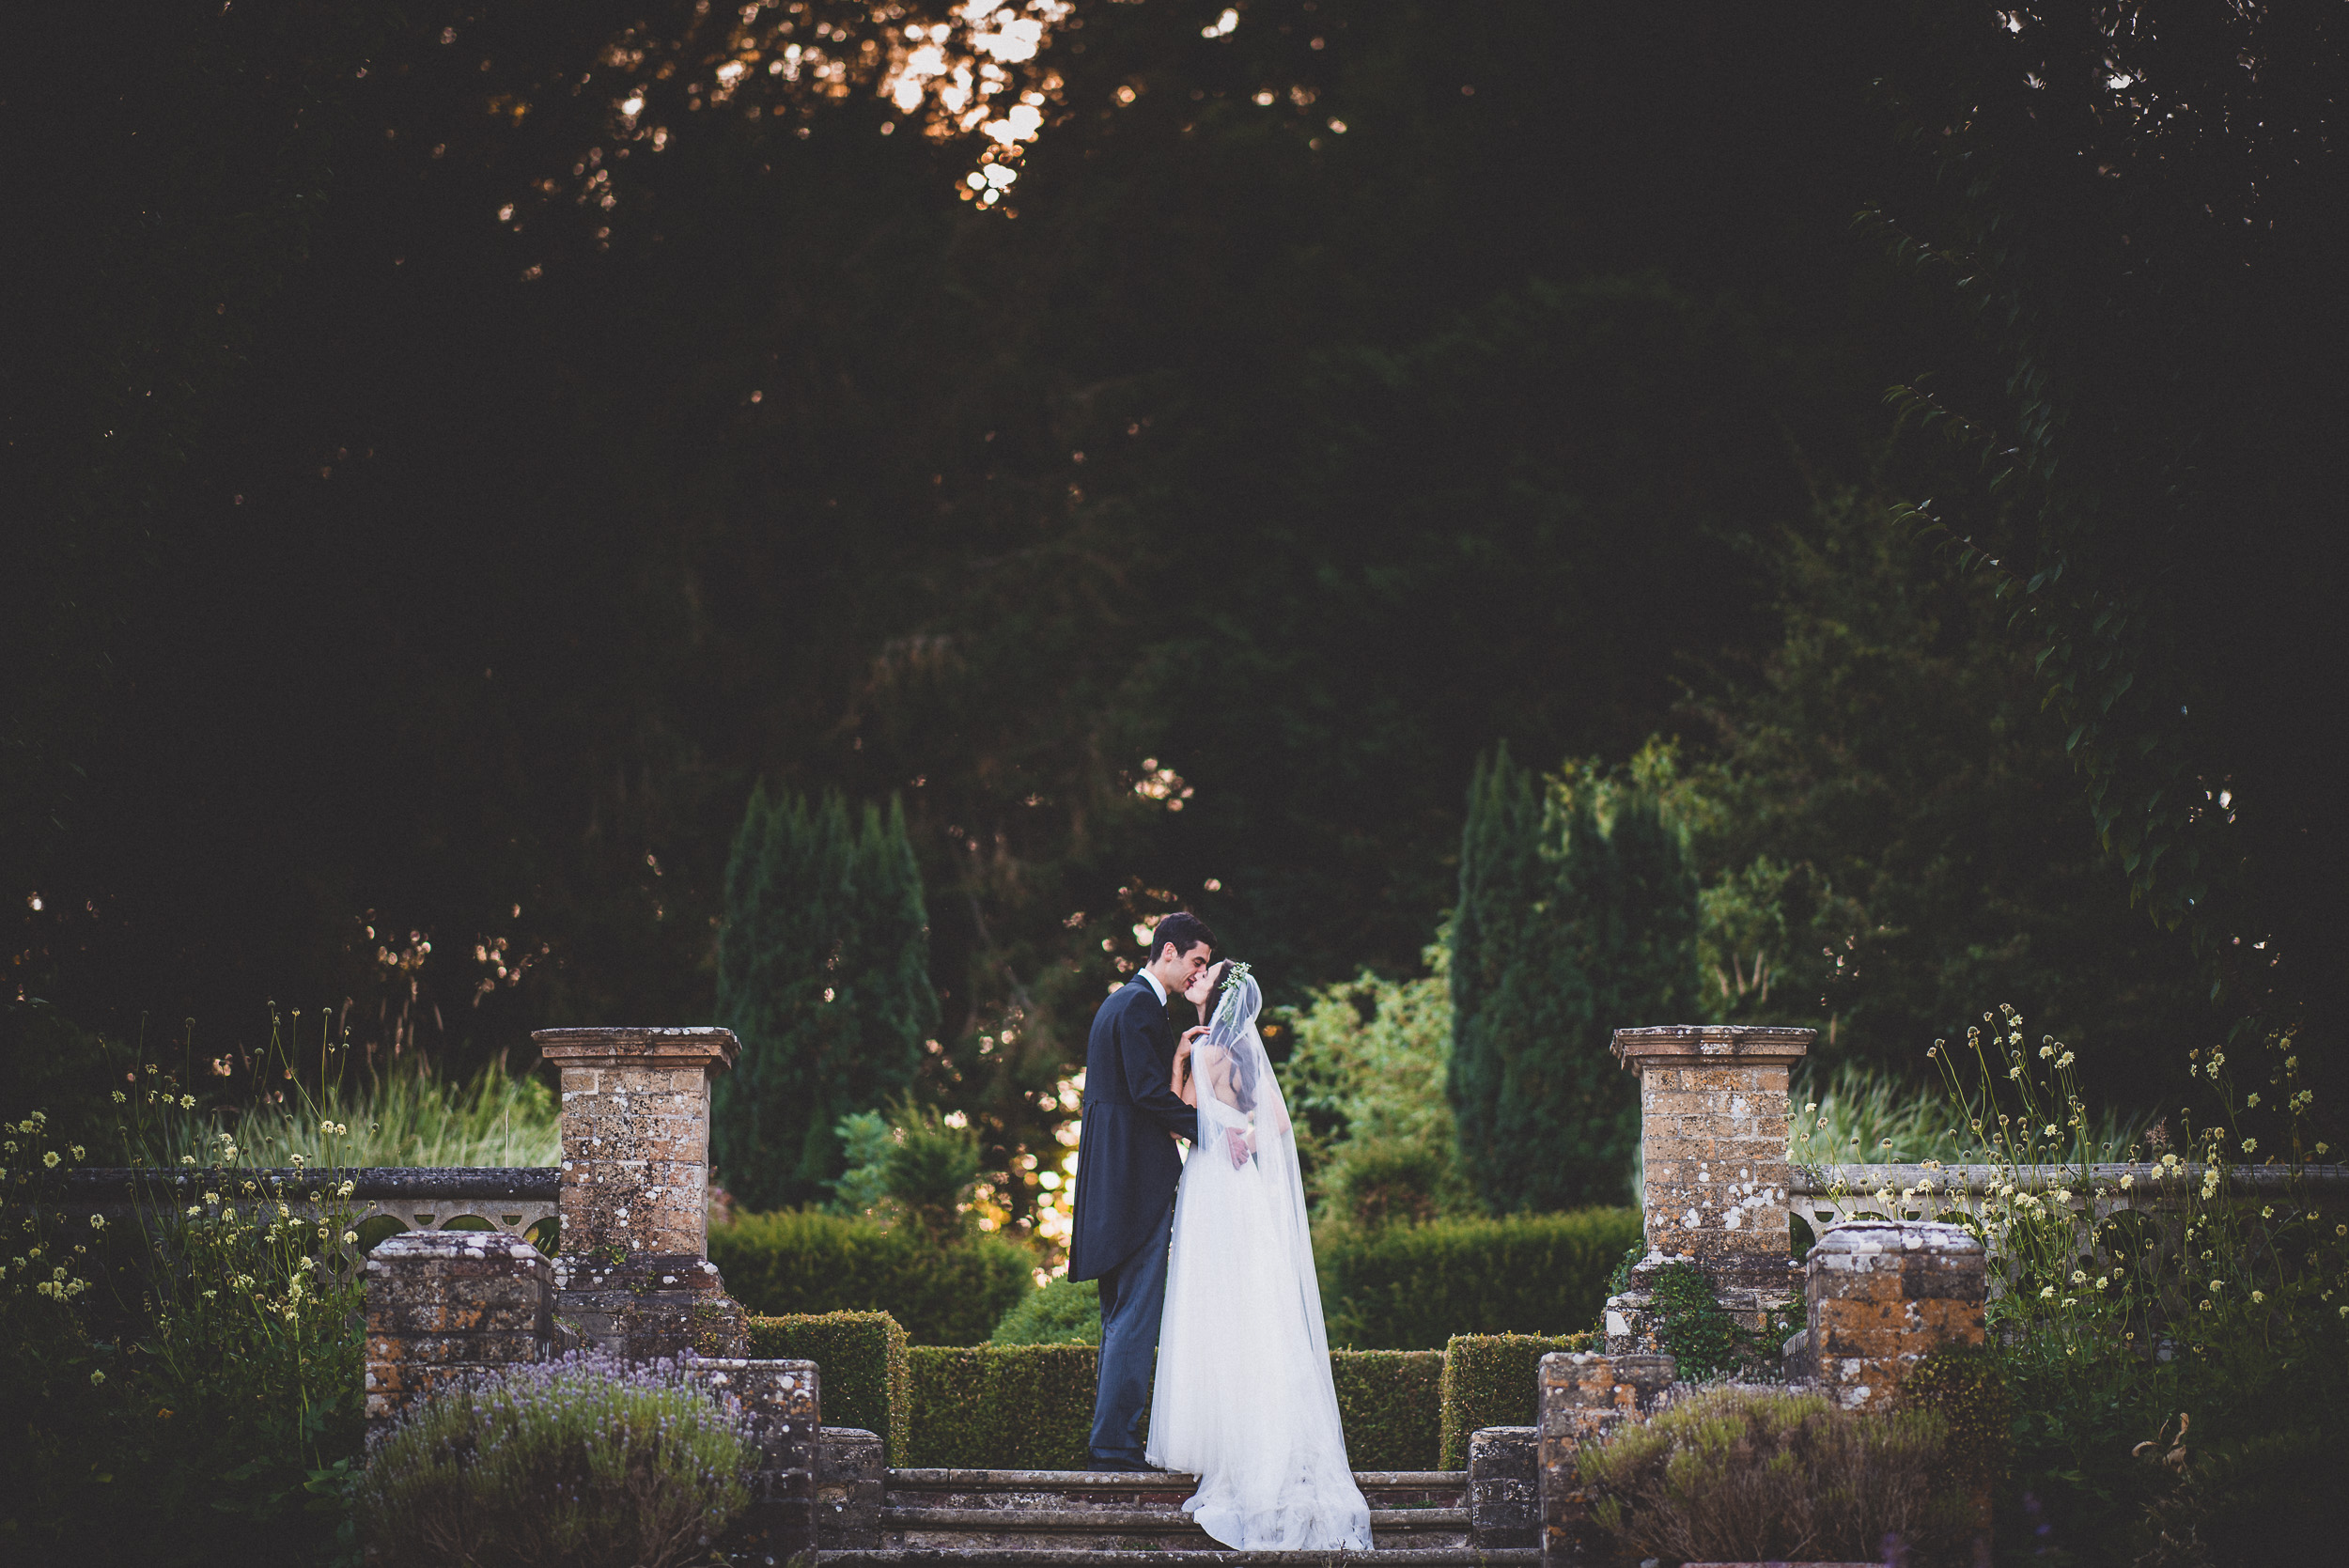 Wiston House Wedding Photography | Helouise & Alex Wiston house wedding photographer 034